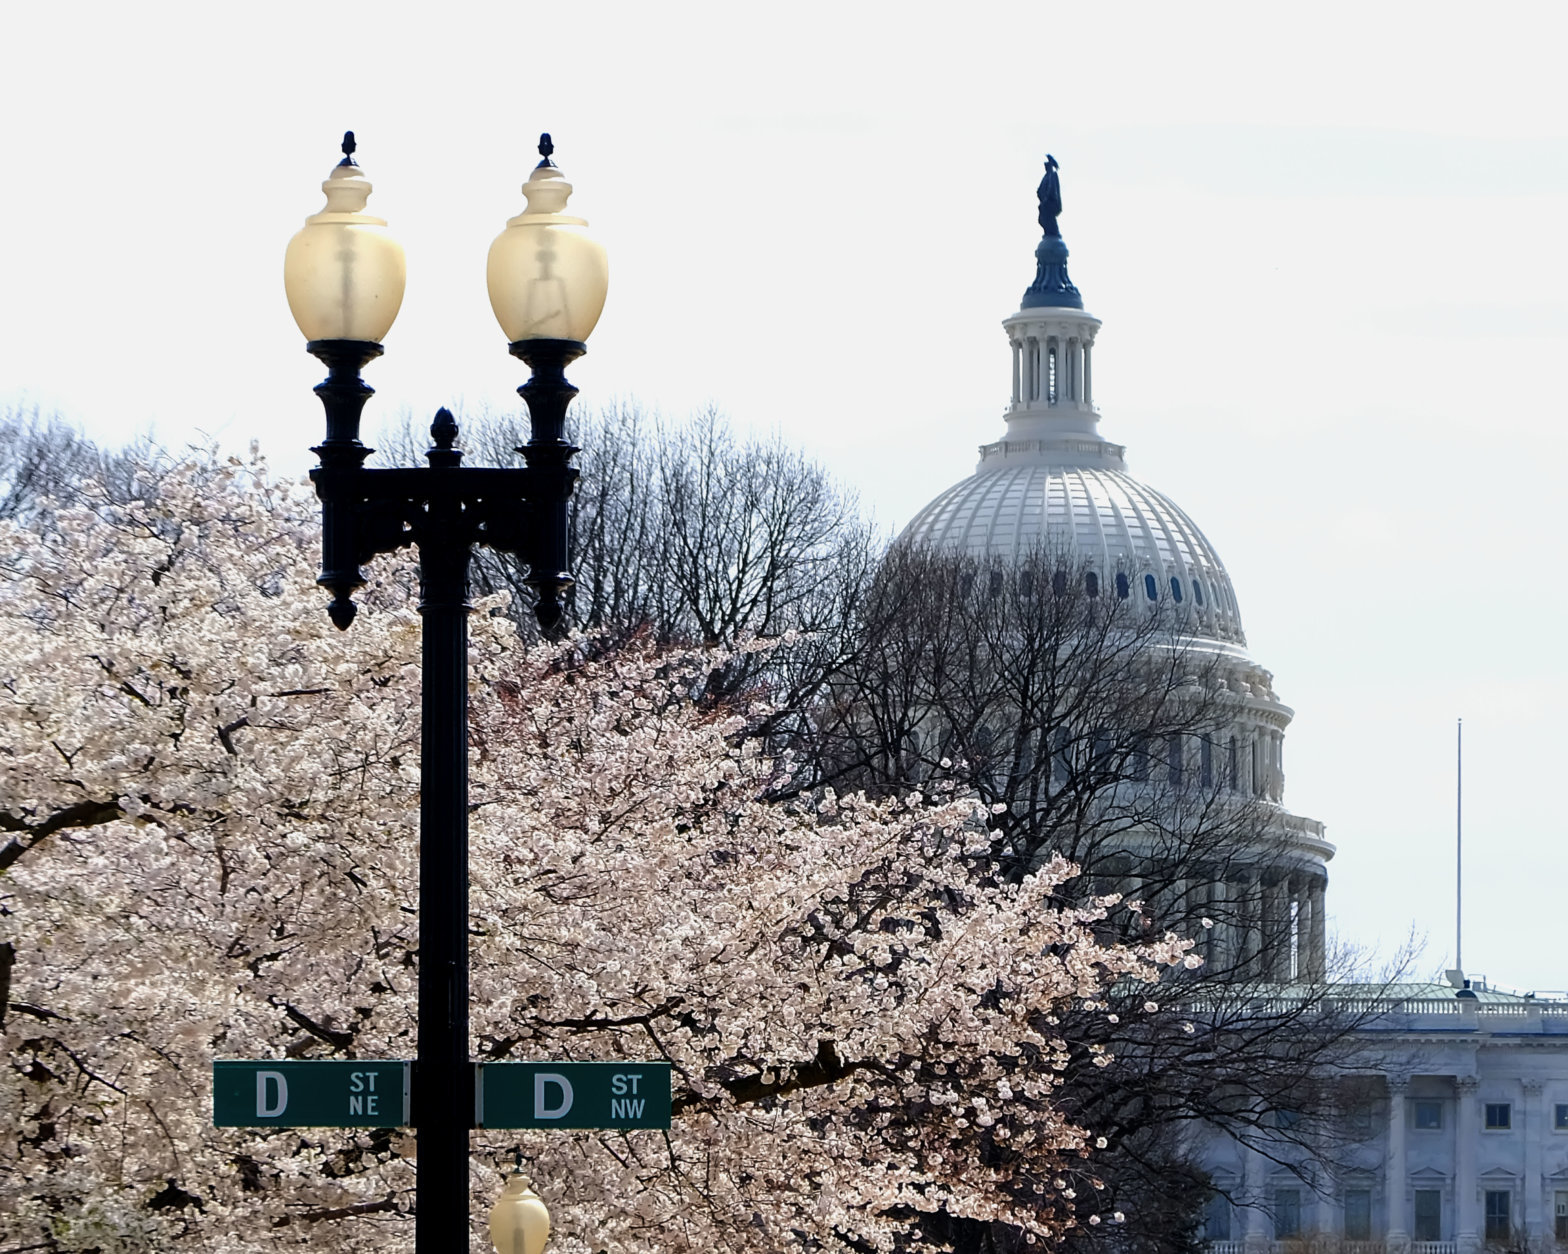 The U.S. Capitol is a backdrop against the fully bloomed cherry blossoms. (Courtesy Shannon Finney Photography)